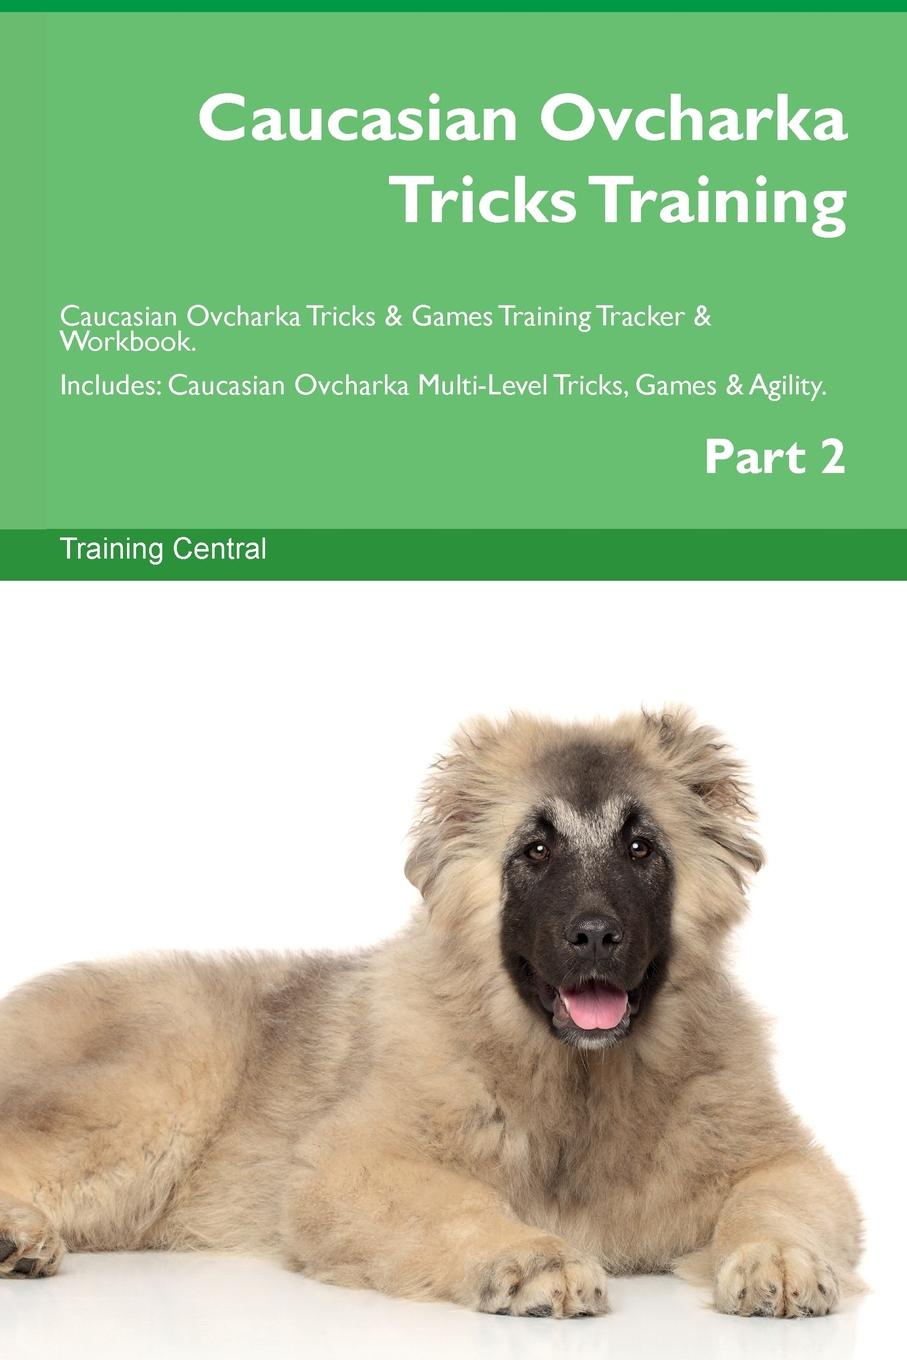 Training Central Caucasian Ovcharka Tricks Training Caucasian Ovcharka Tricks . Games Training Tracker . Workbook. Includes. Caucasian Ovcharka Multi-Level Tricks, Games . Agility. Part 2 this book loves you